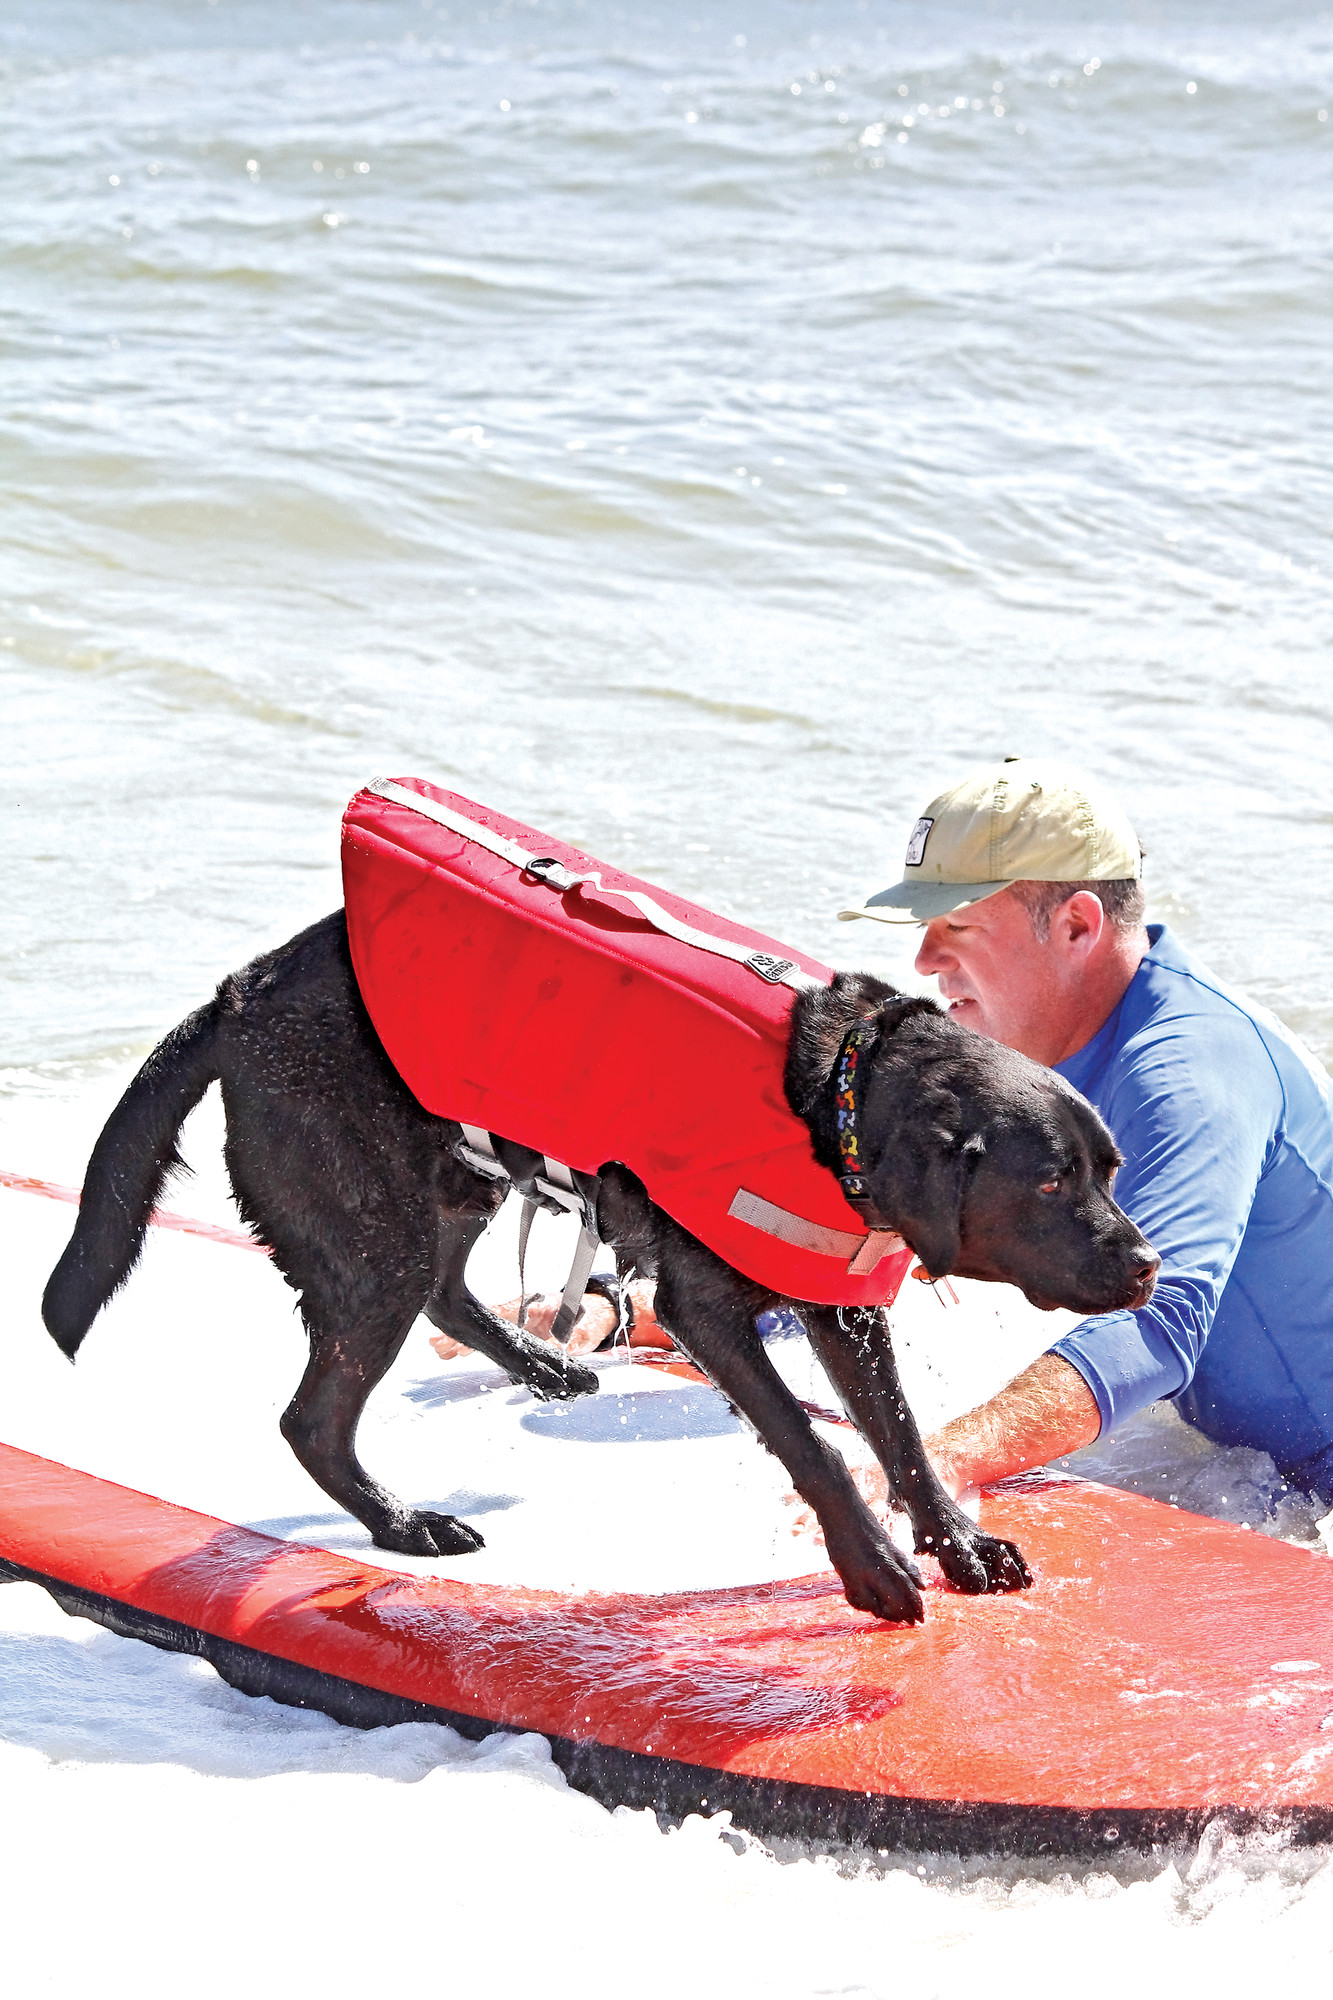 Norm the surfing dog was on hand to raise money and awareness for the Tommy Brull Foundation and Camp Anchor.